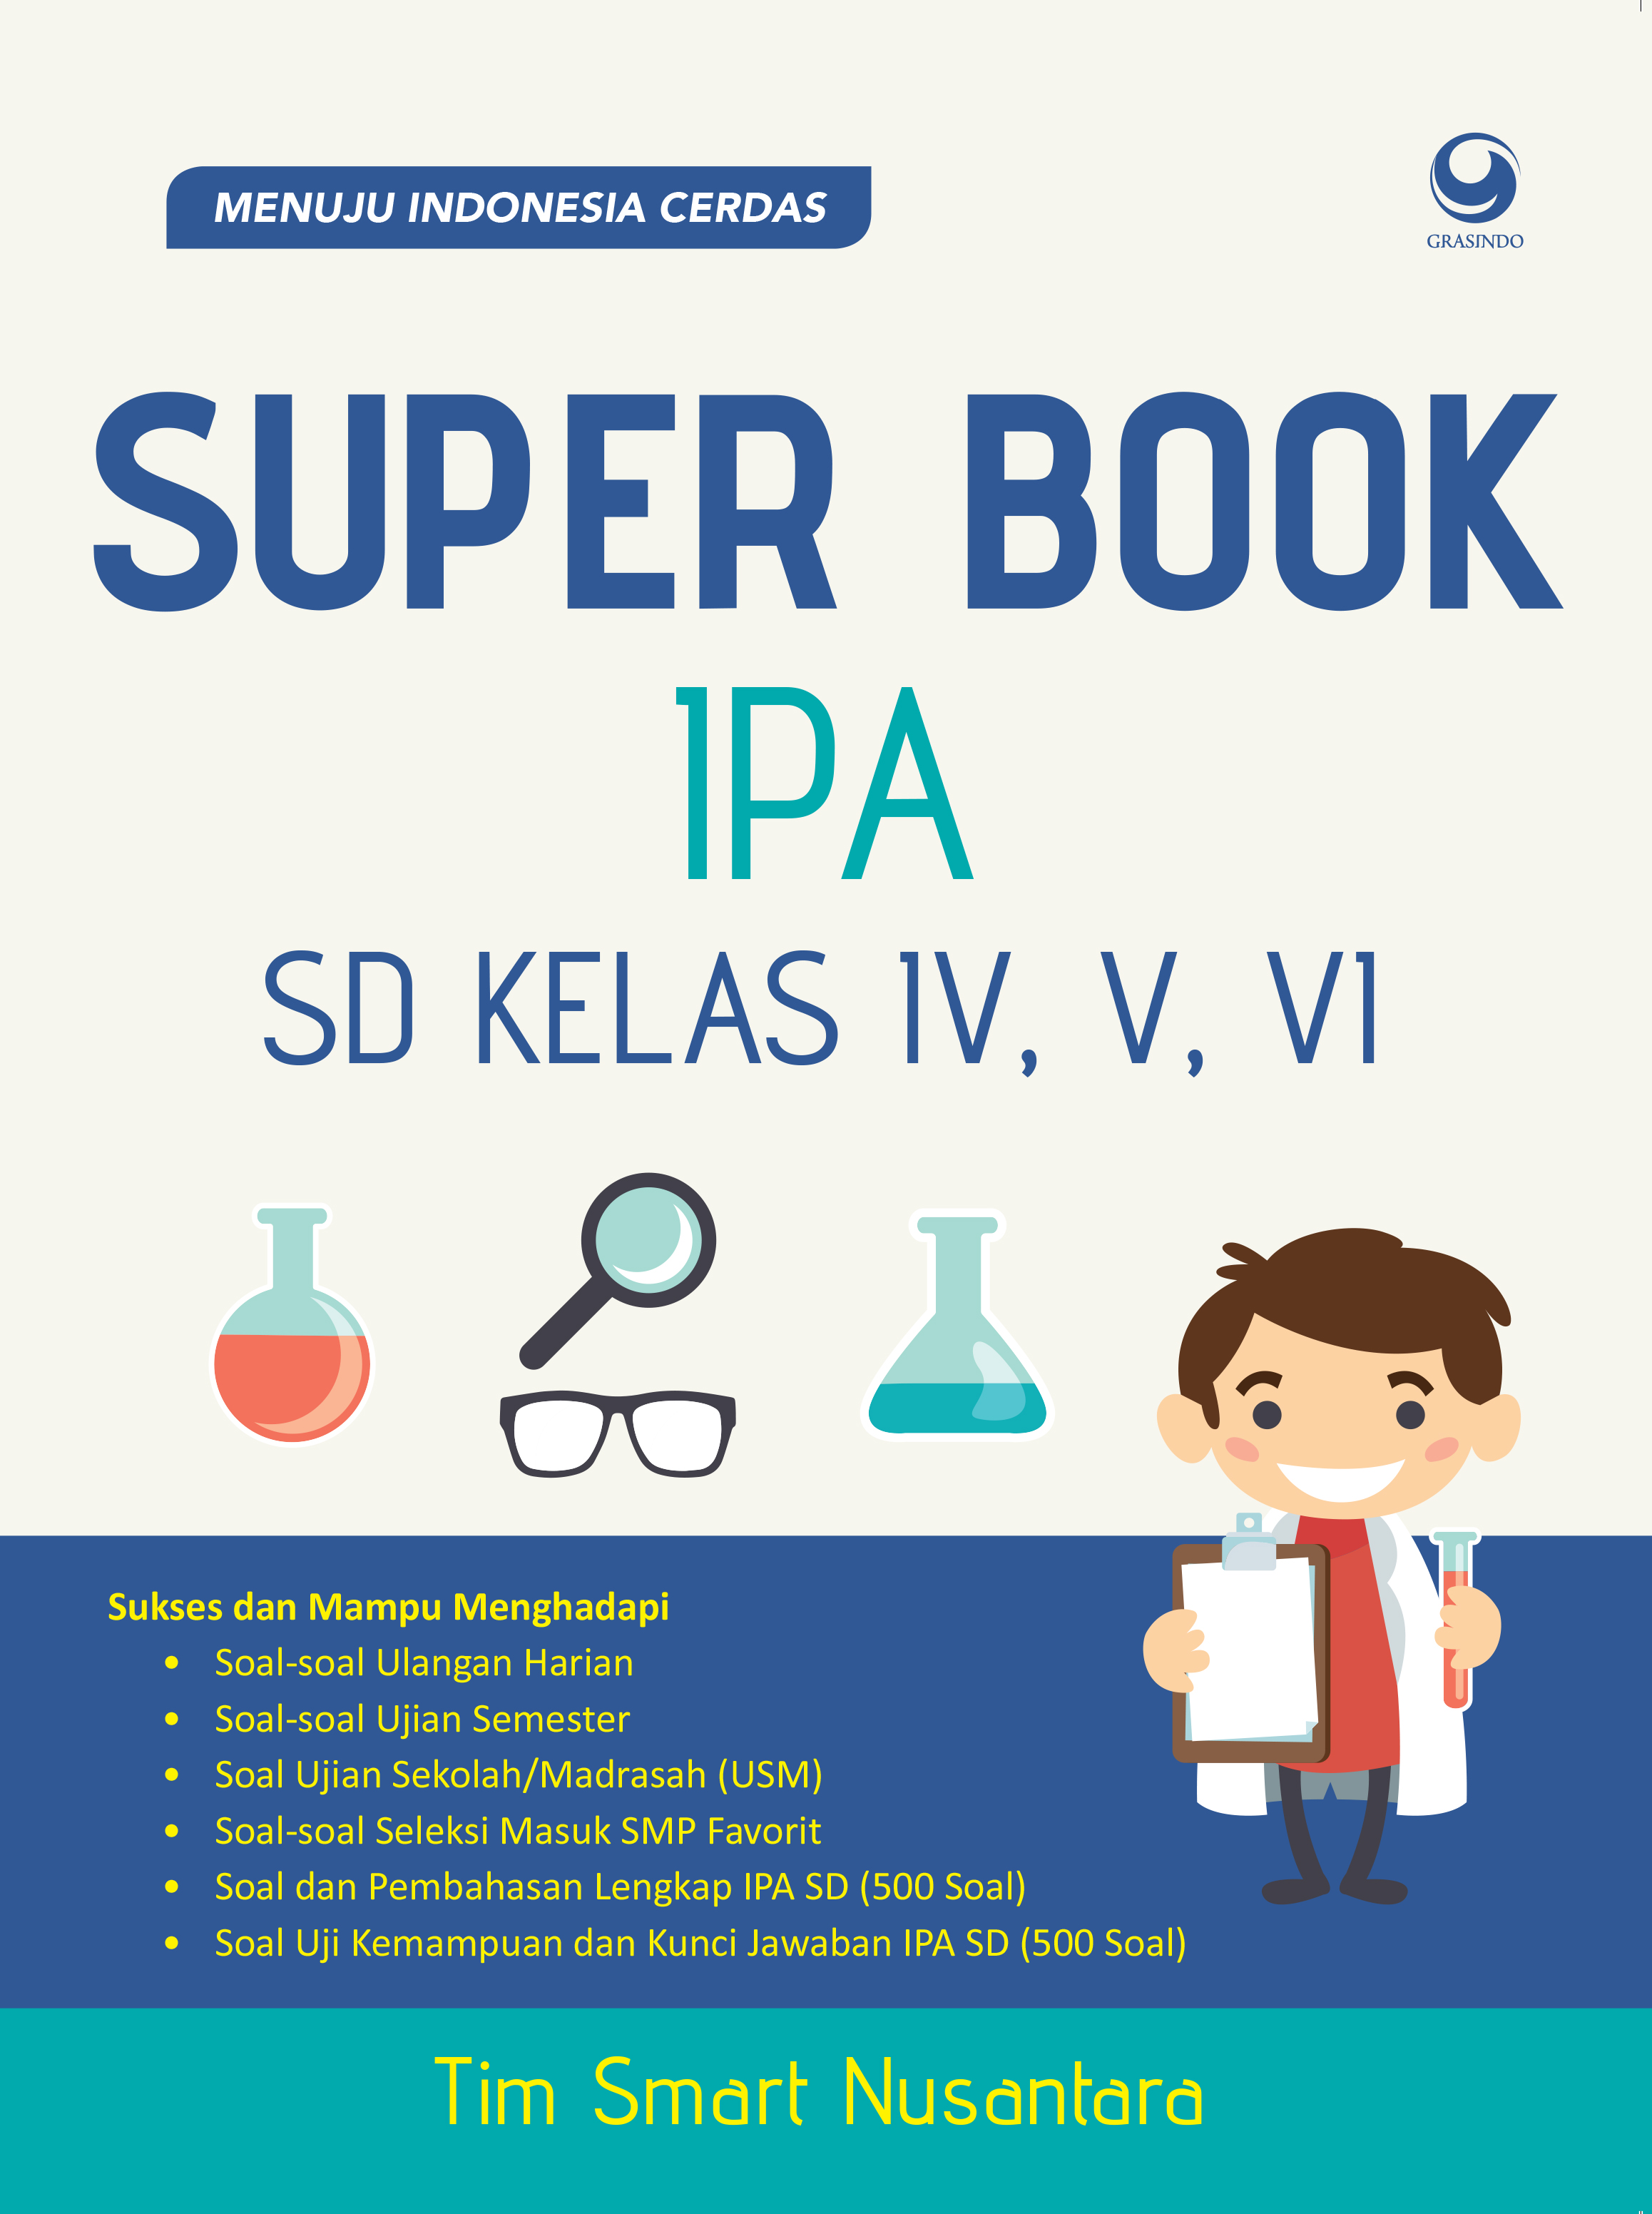 Superbook IPA SD/MI Kelas IV, V, VI